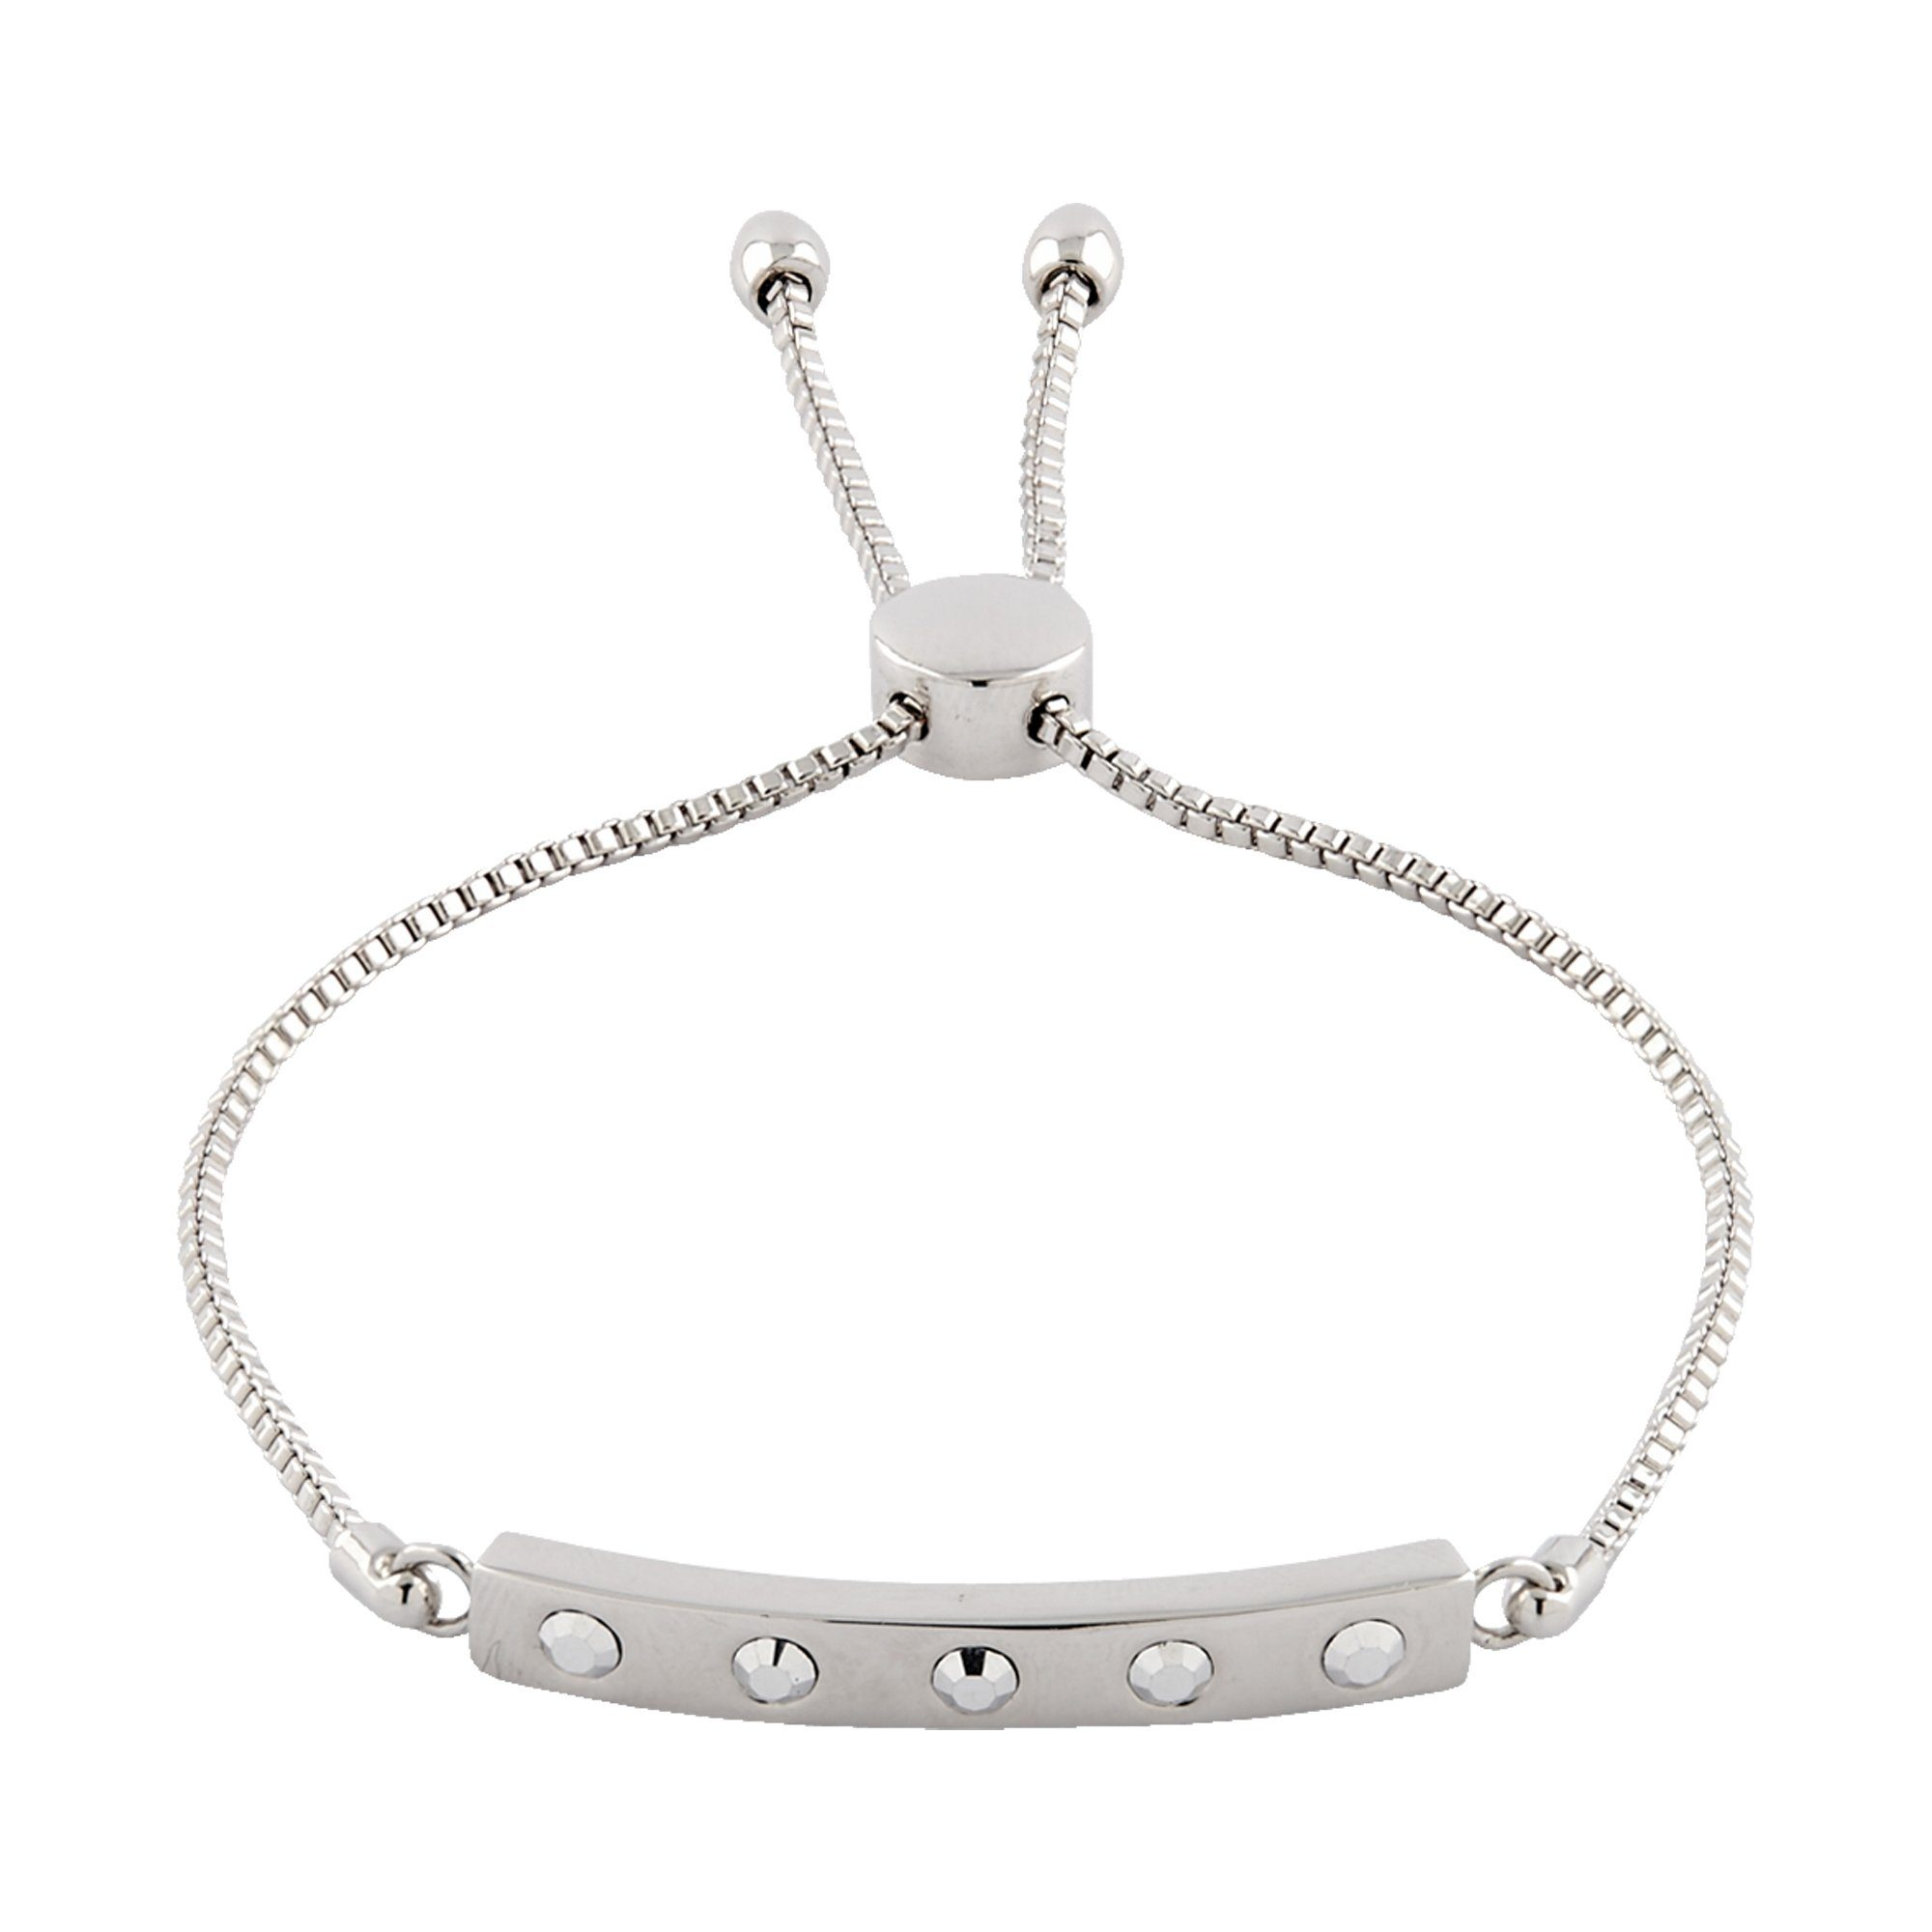 Buckley London Armschmuck Messing rhodiniert mit Kristallen